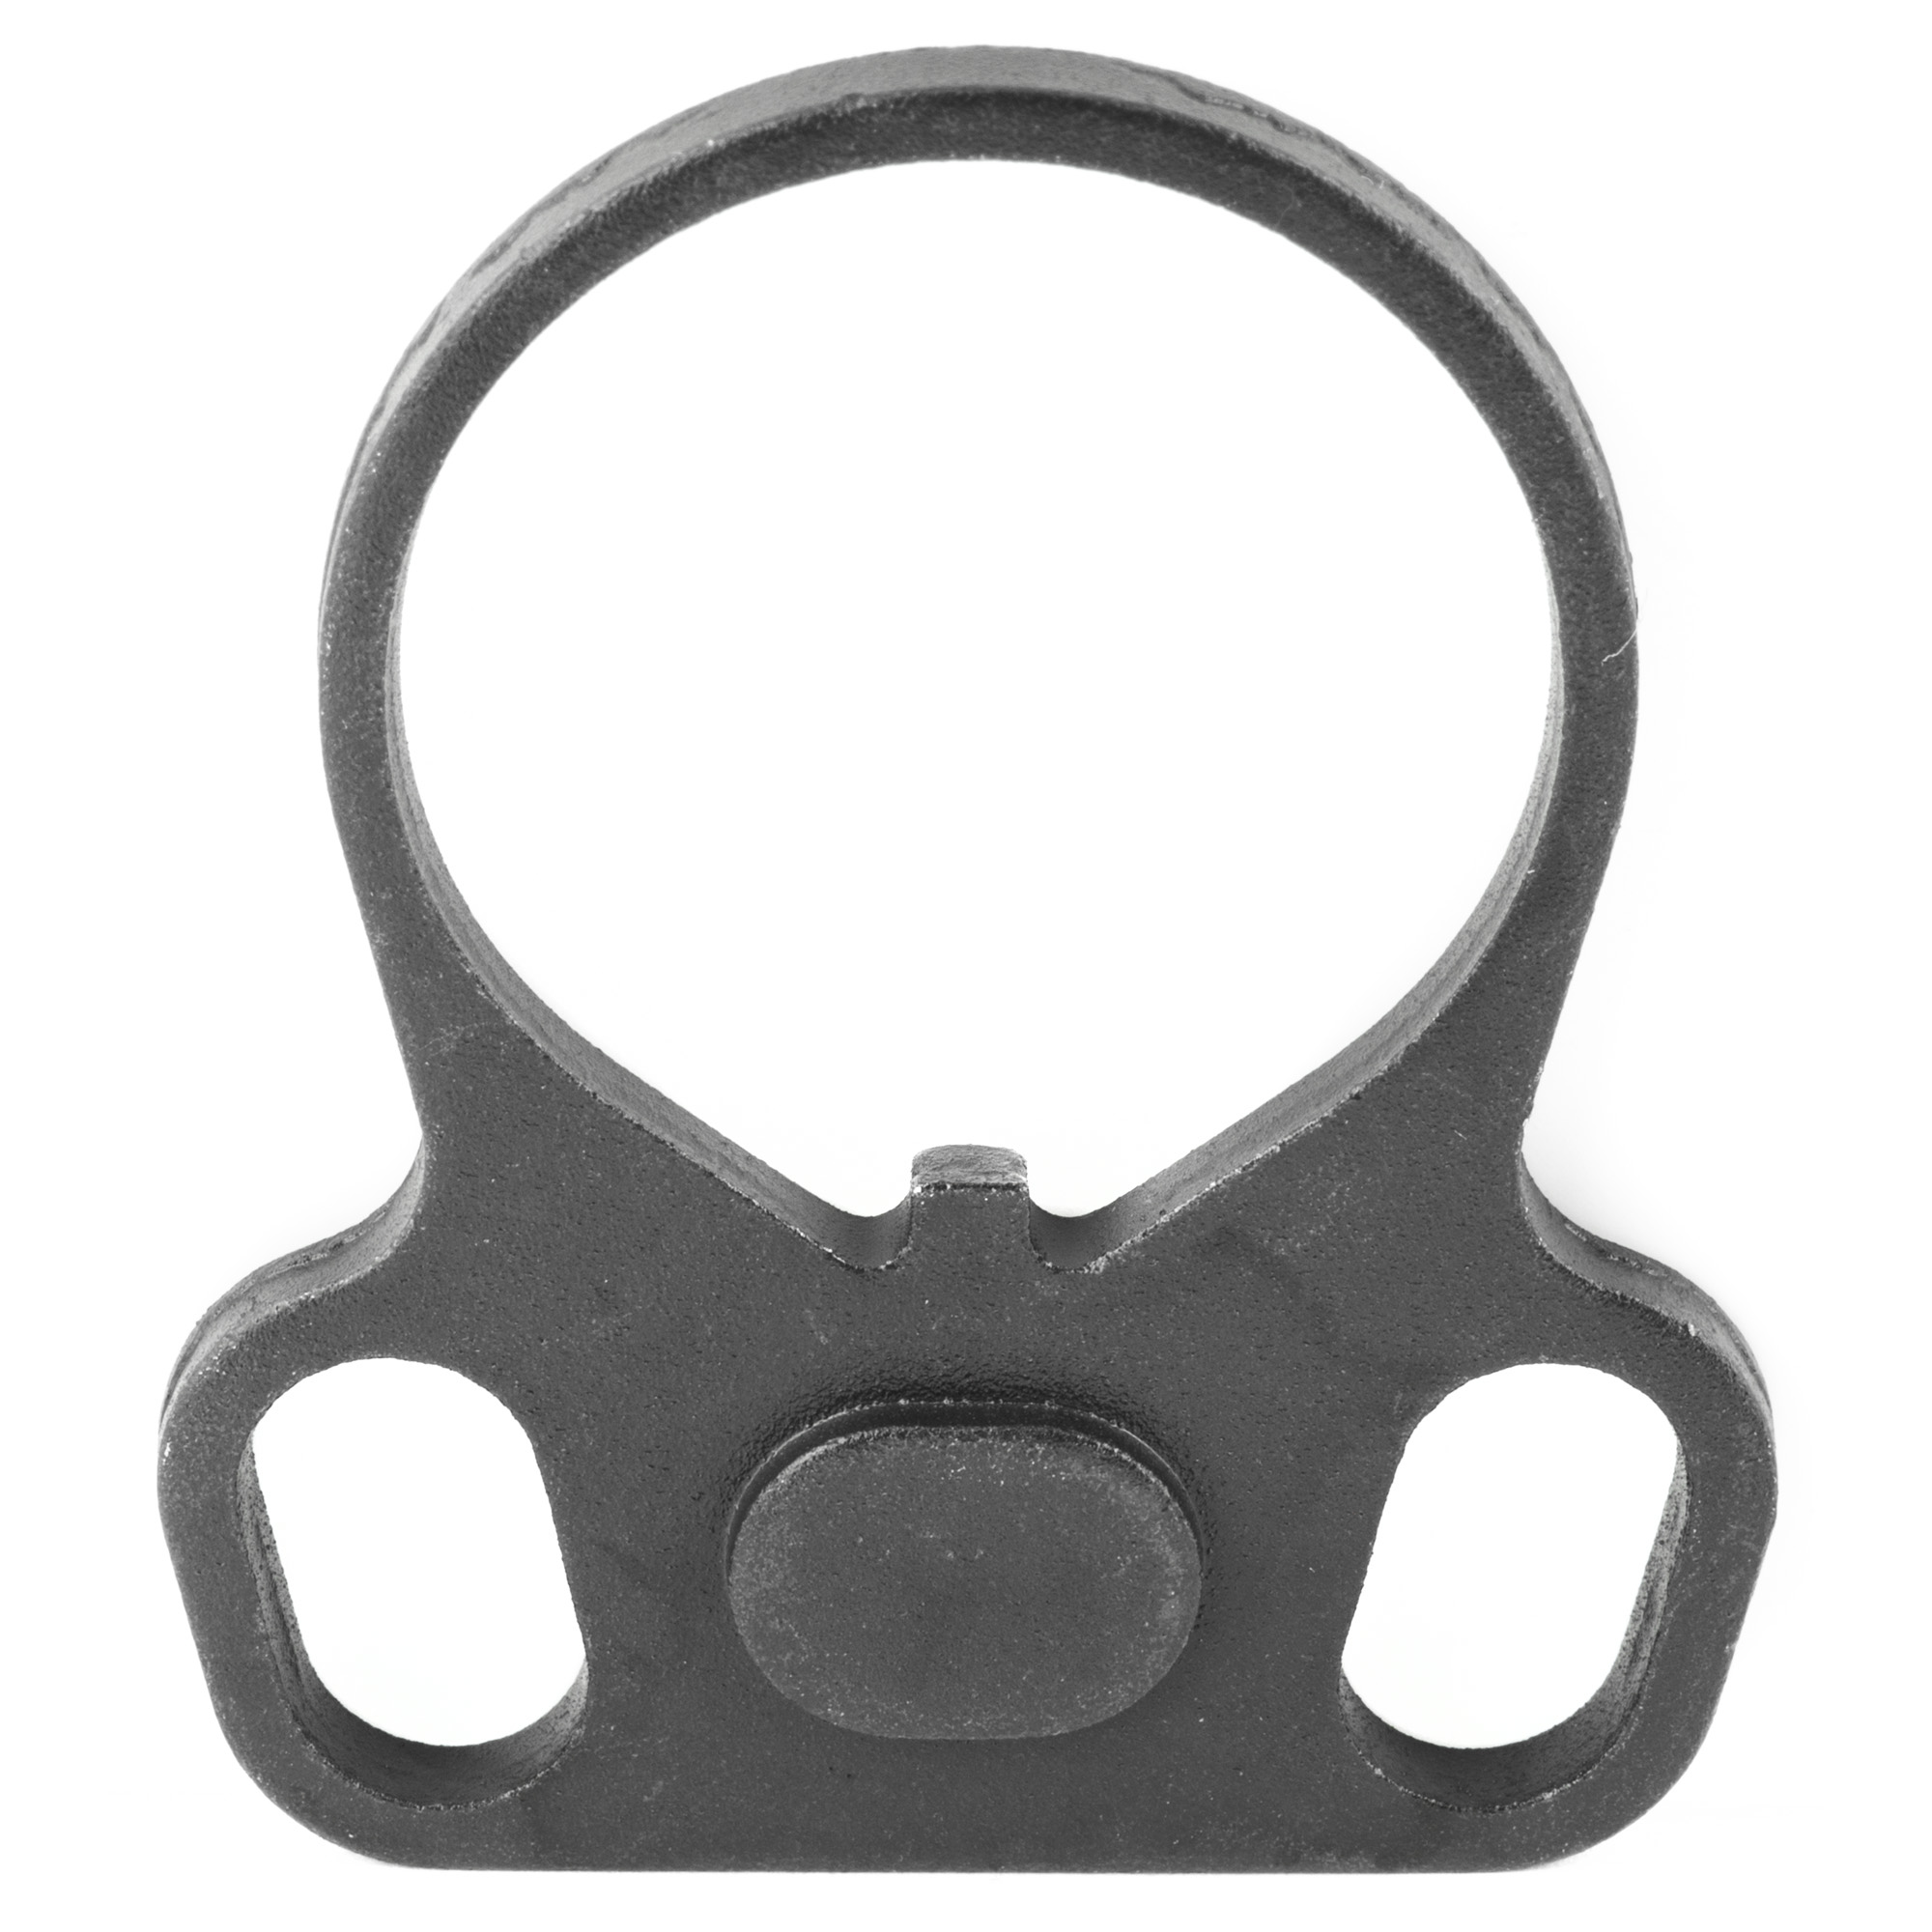 Ambi Loop Endplate for AR15s provide the shooter with a loop on both sides of the receiver to mount a single point sling.